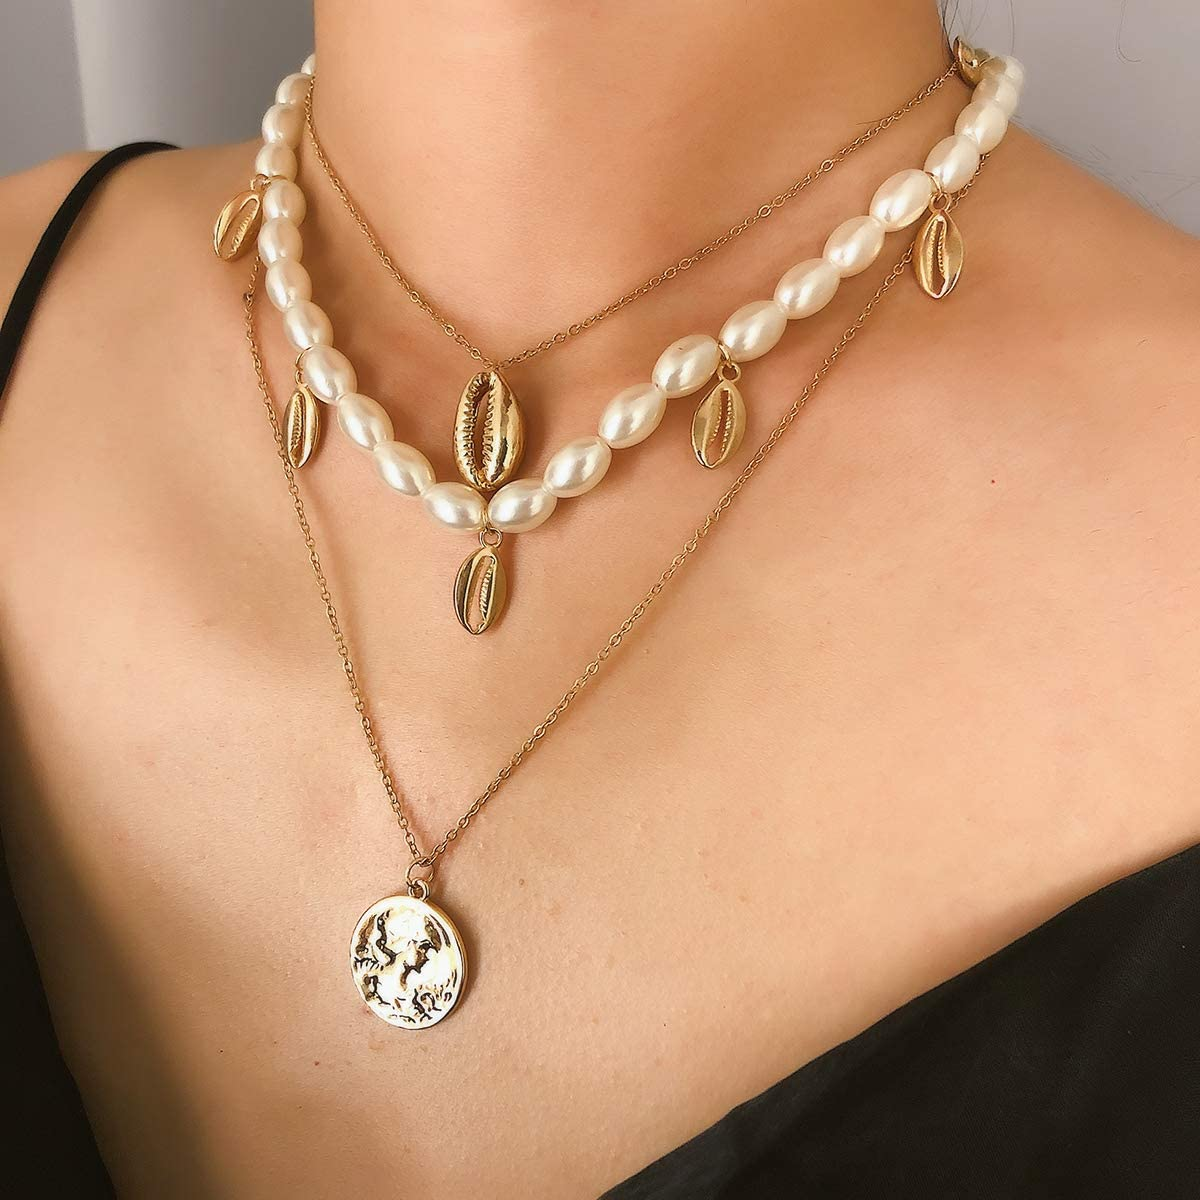 GOOD STUDIOS Pendant Necklace Layered Chain Choker Pearl Shell Coin Jewel Round Plate Lock Heart Gold Silver Tone for Women Girls Fashion Jewelry